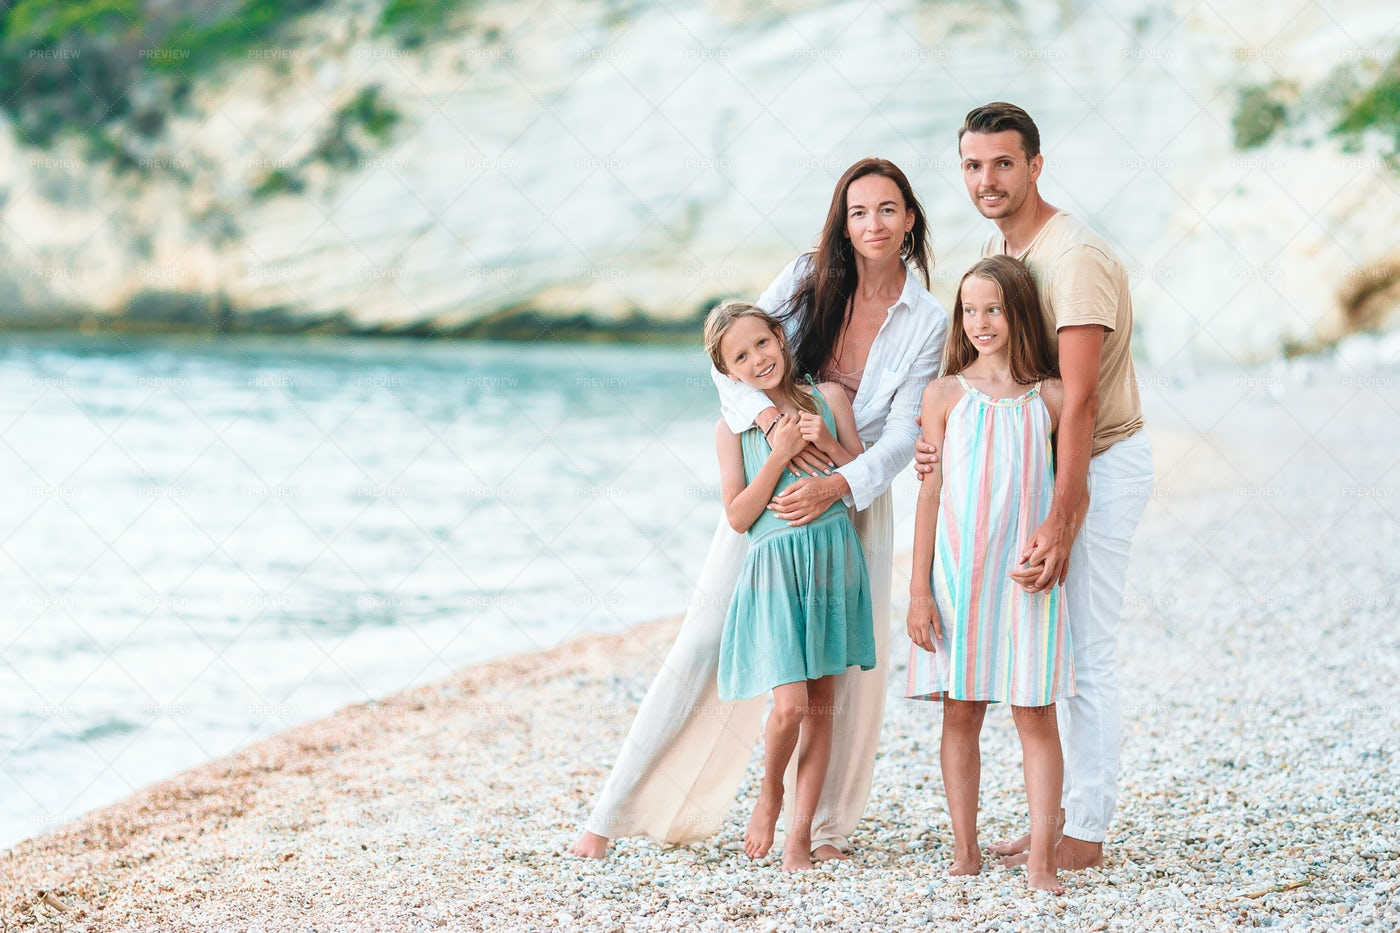 Happy Family During Vacations: Stock Photos